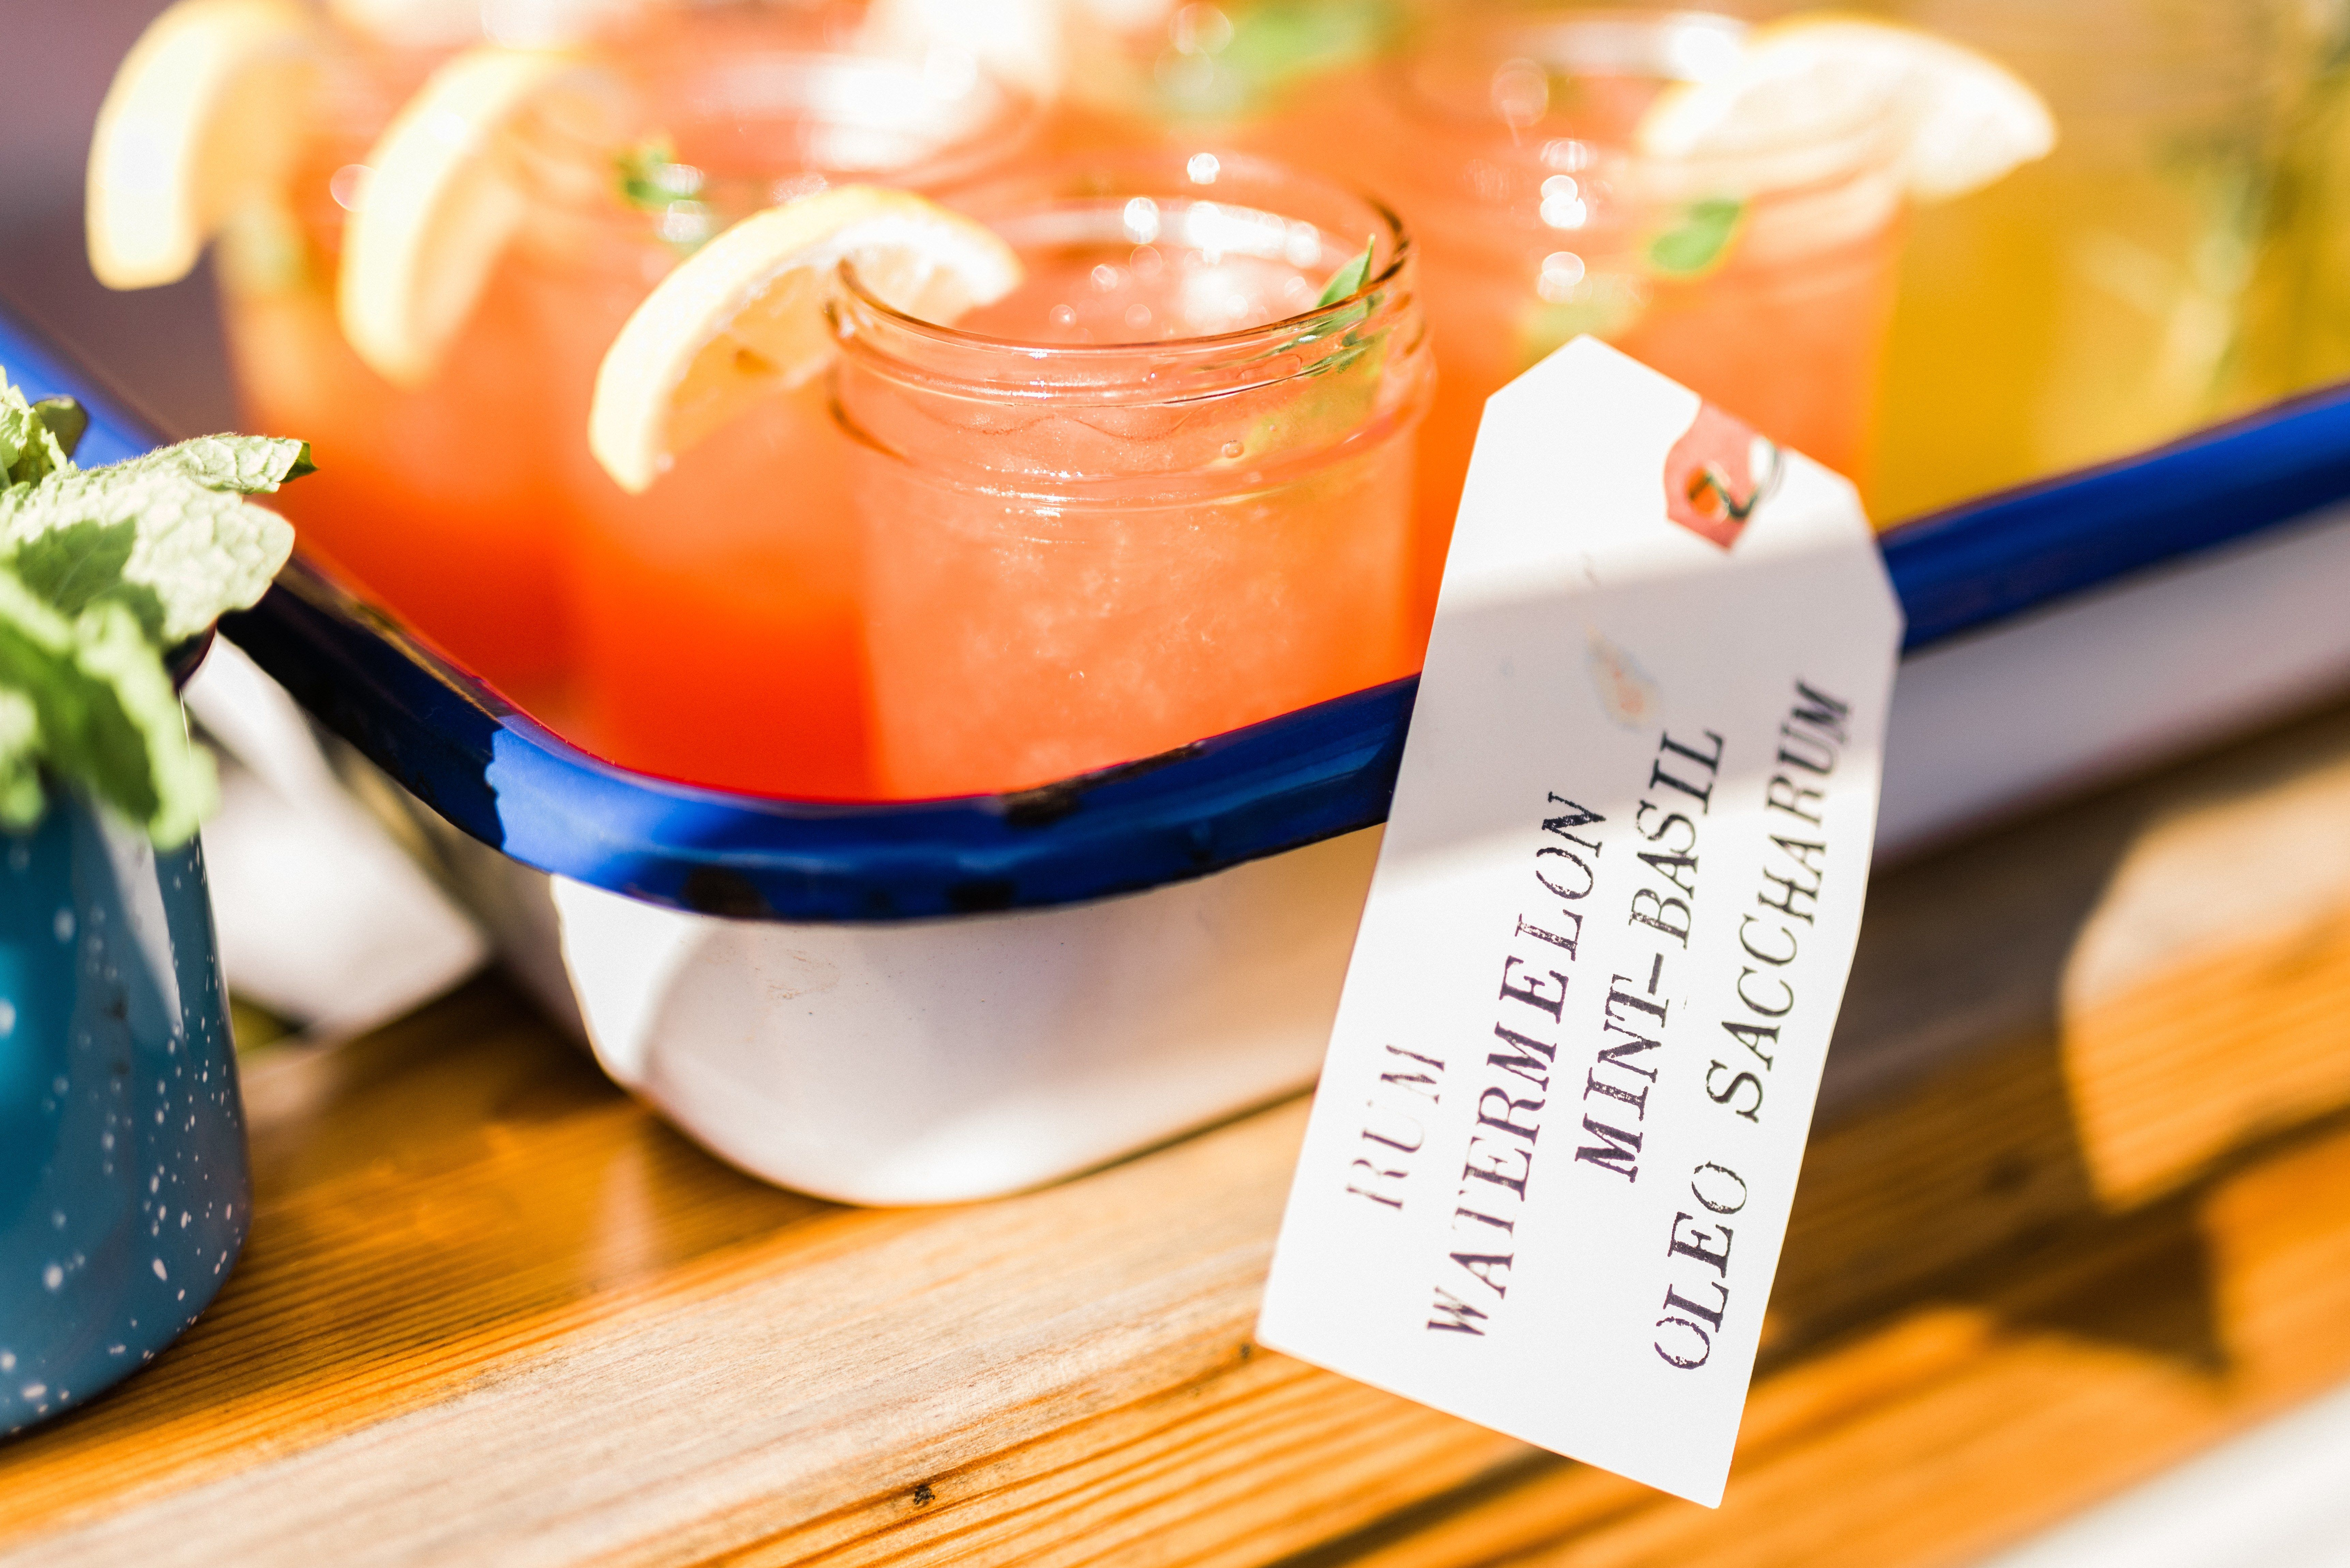 How to Come Up With Signature Wedding Cocktail Names